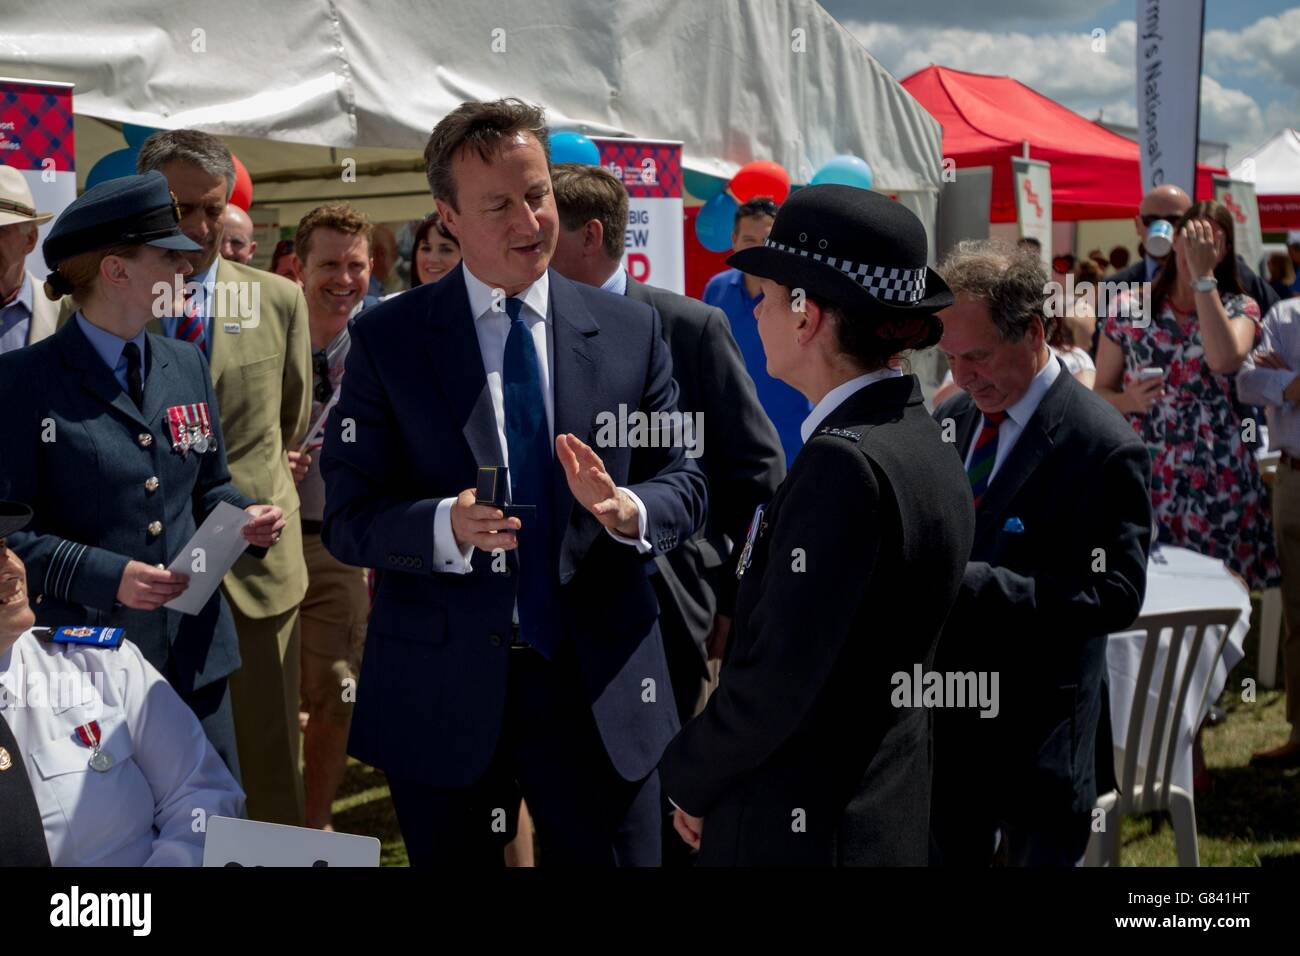 Prime Minister David Cameron views exhibits in Stoke Park on Armed Forces Day in Guildford. Stock Photo